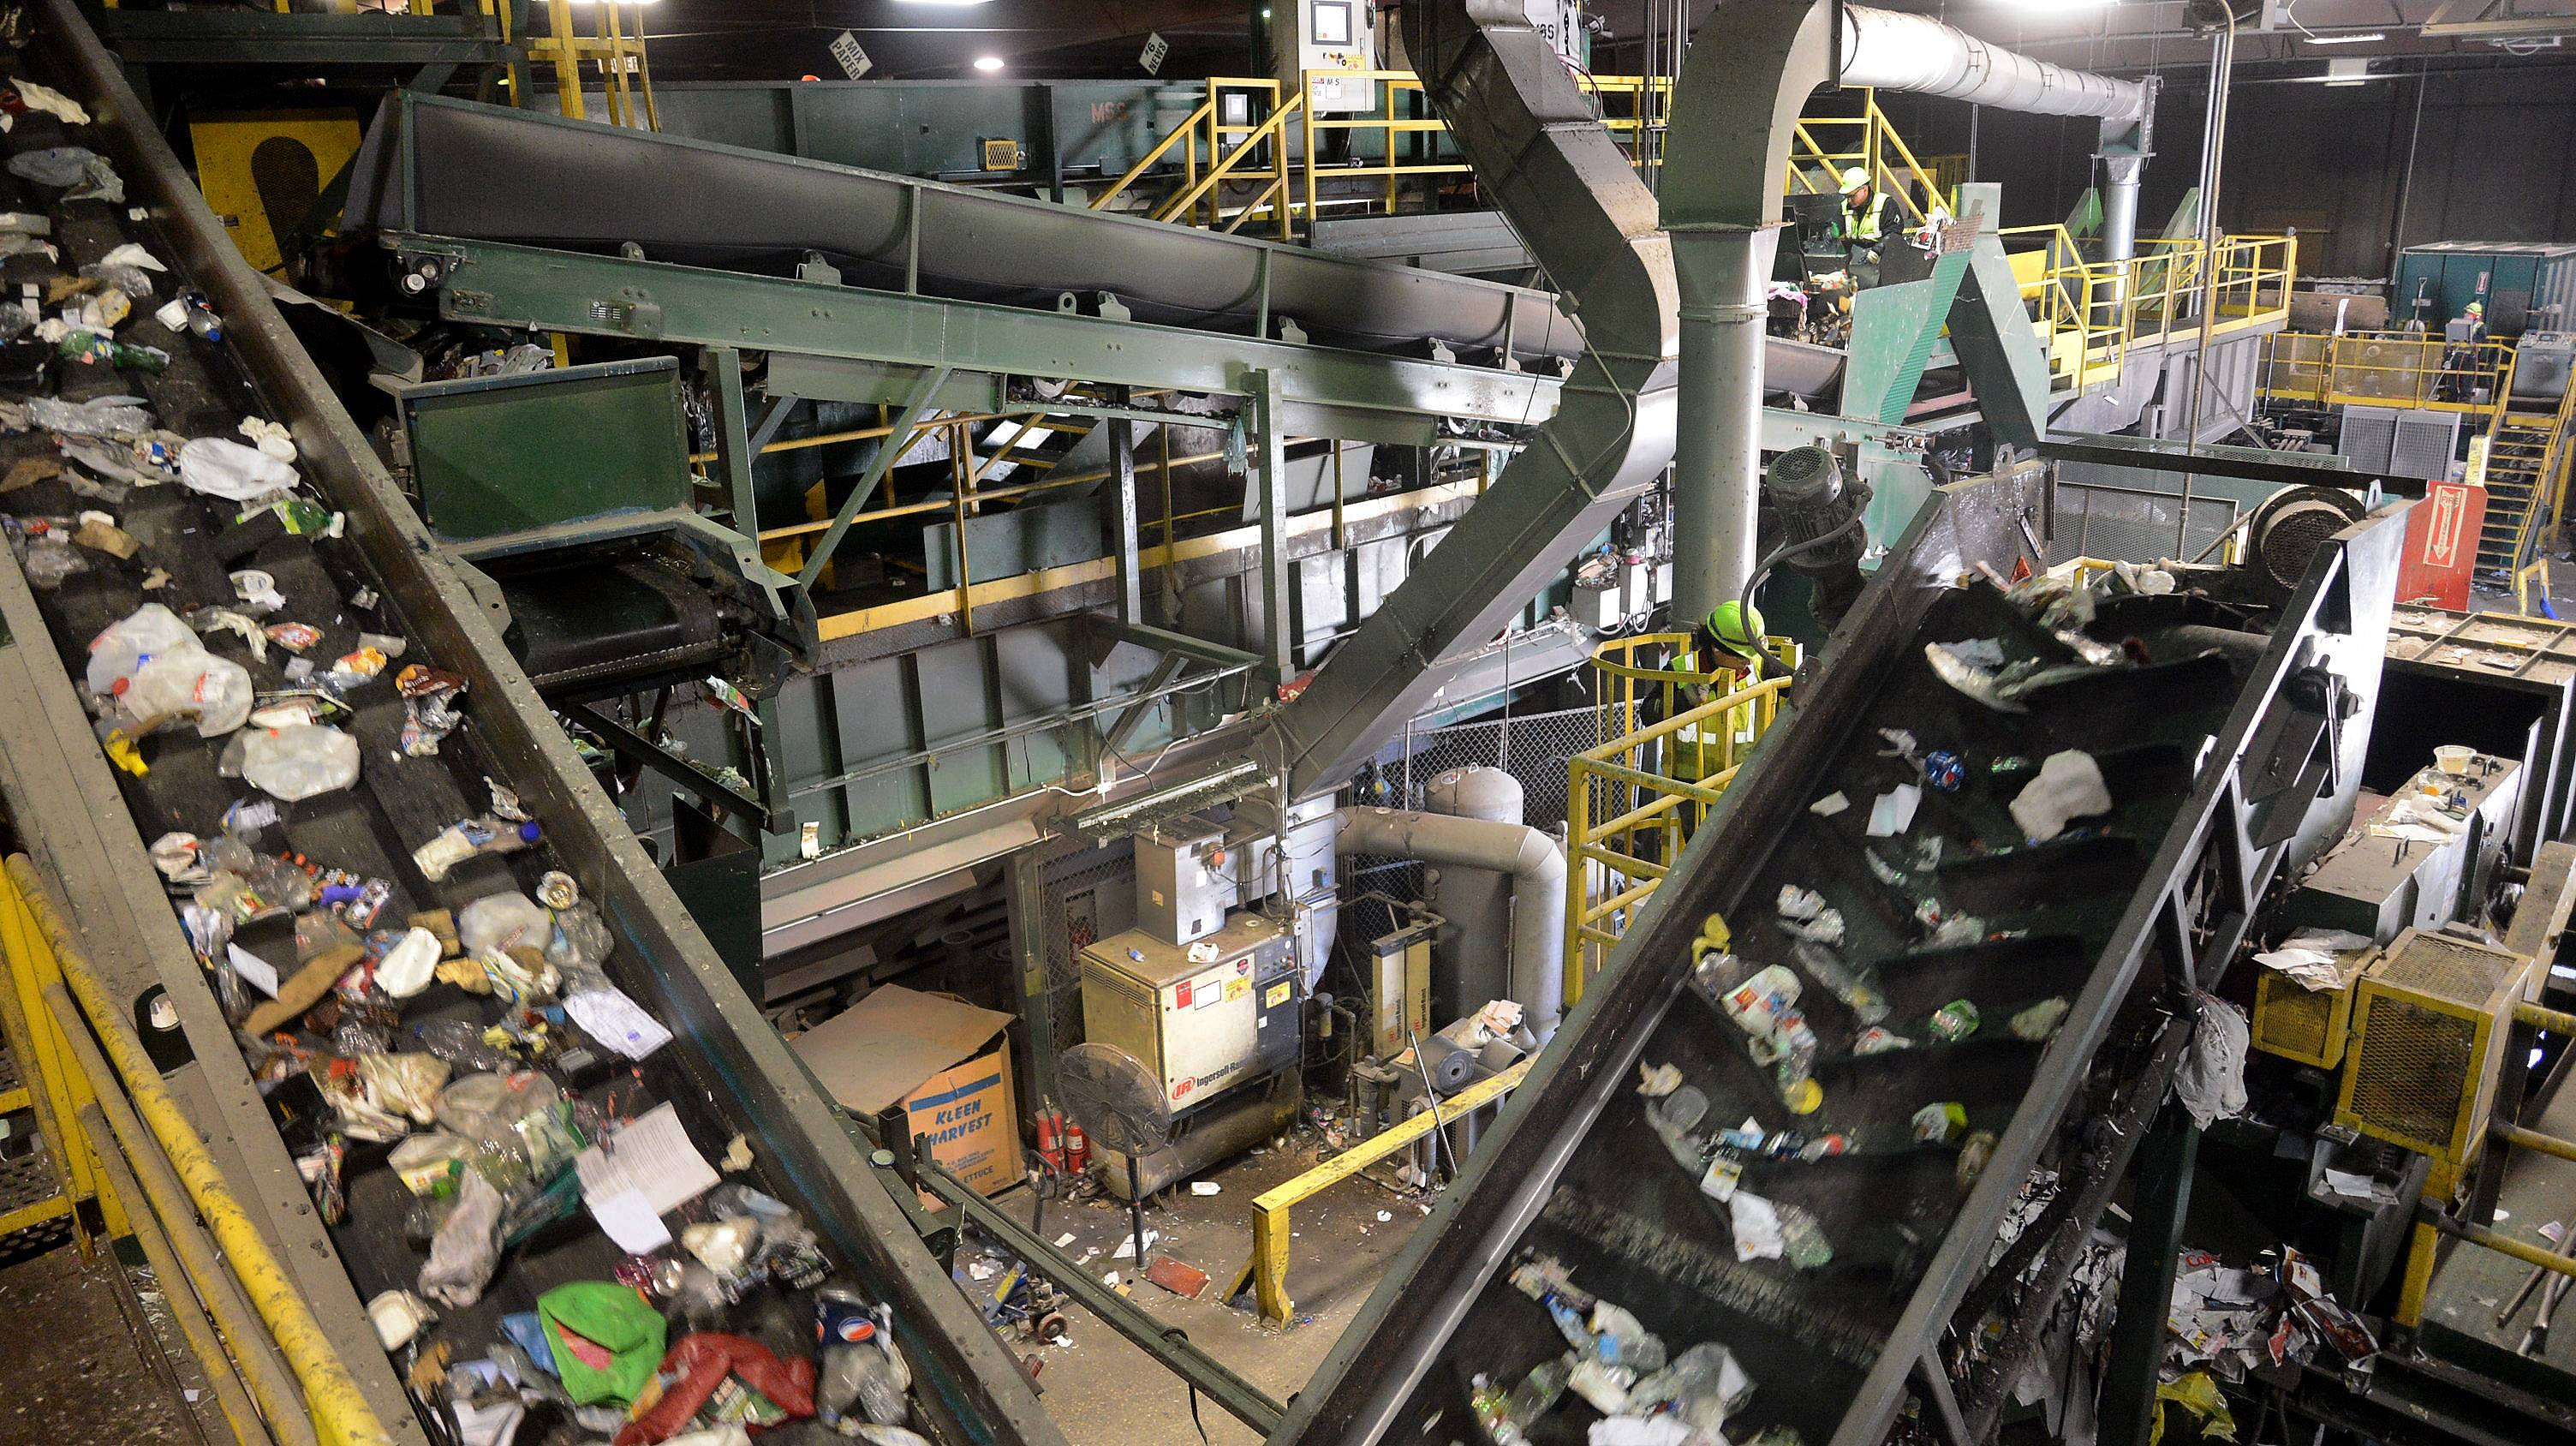 Waste Management Recycle America Lake County Processing Facility in Grayslake.